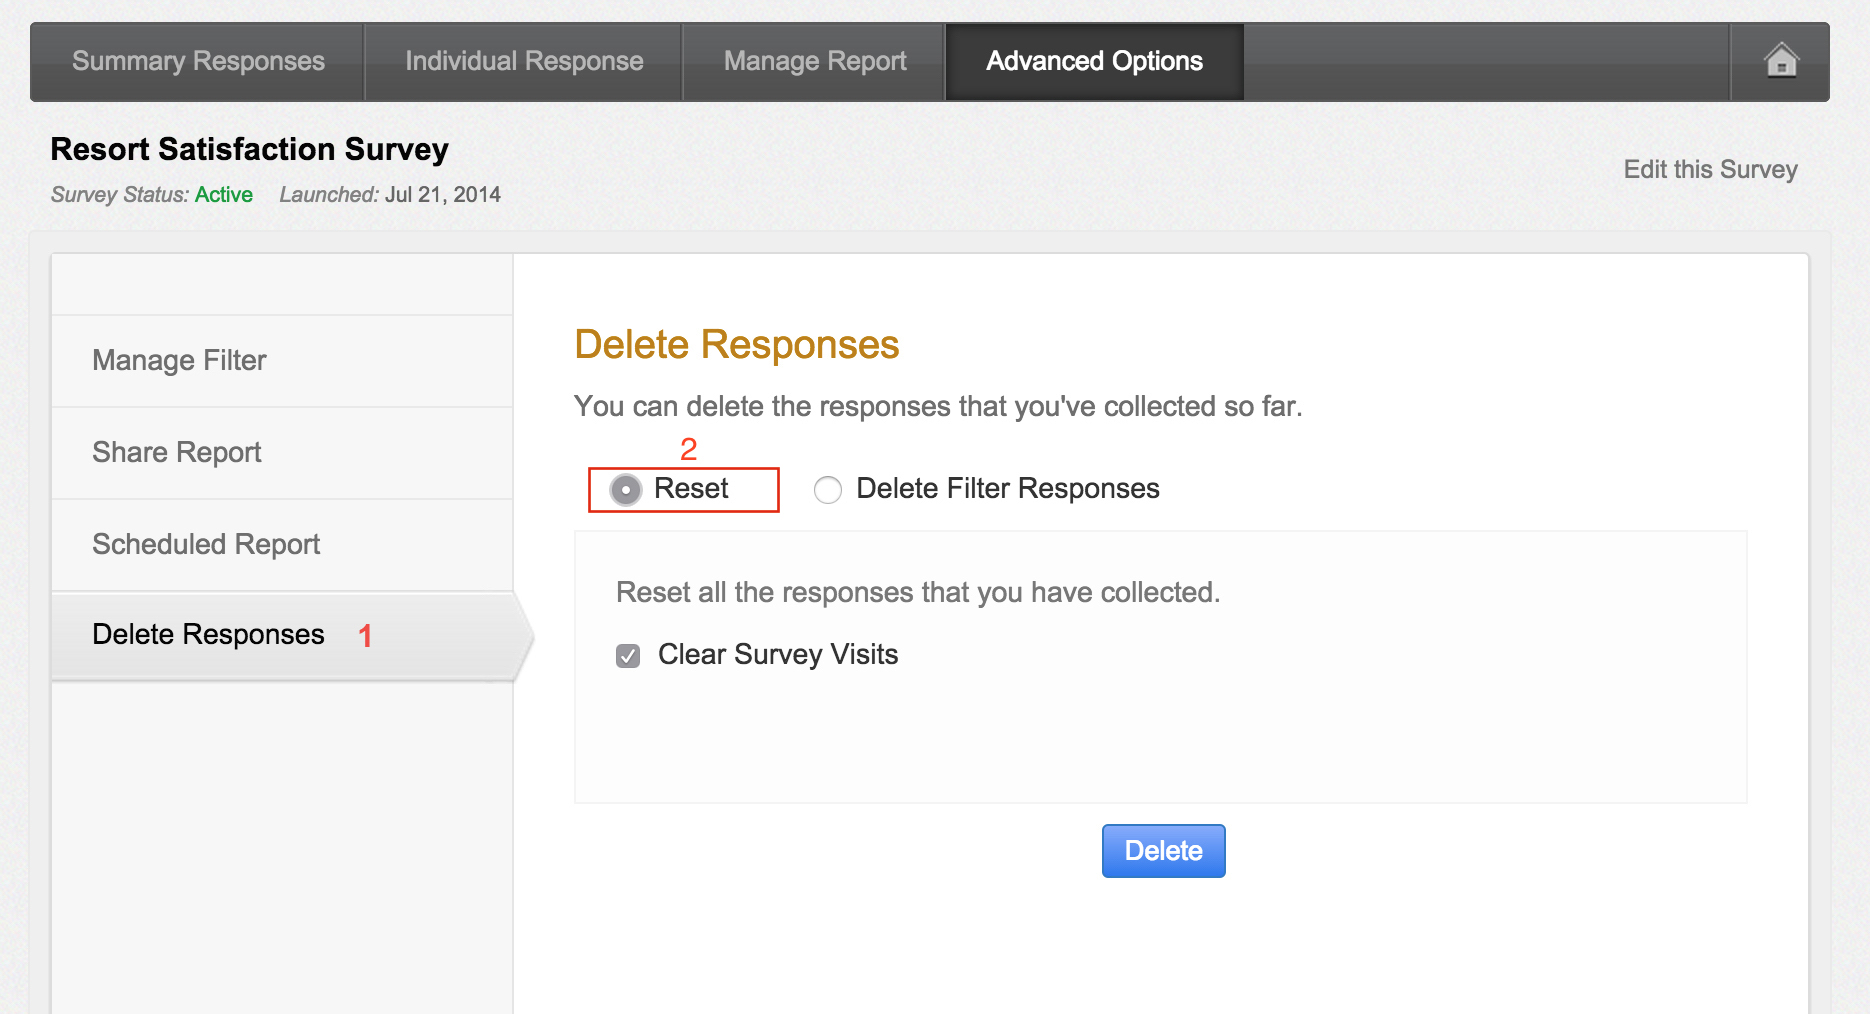 View responses and manage reports easily you can select from options to reset or delete responses select reset to clear all the survey responses checkuncheck to clear the surveys visits nvjuhfo Images